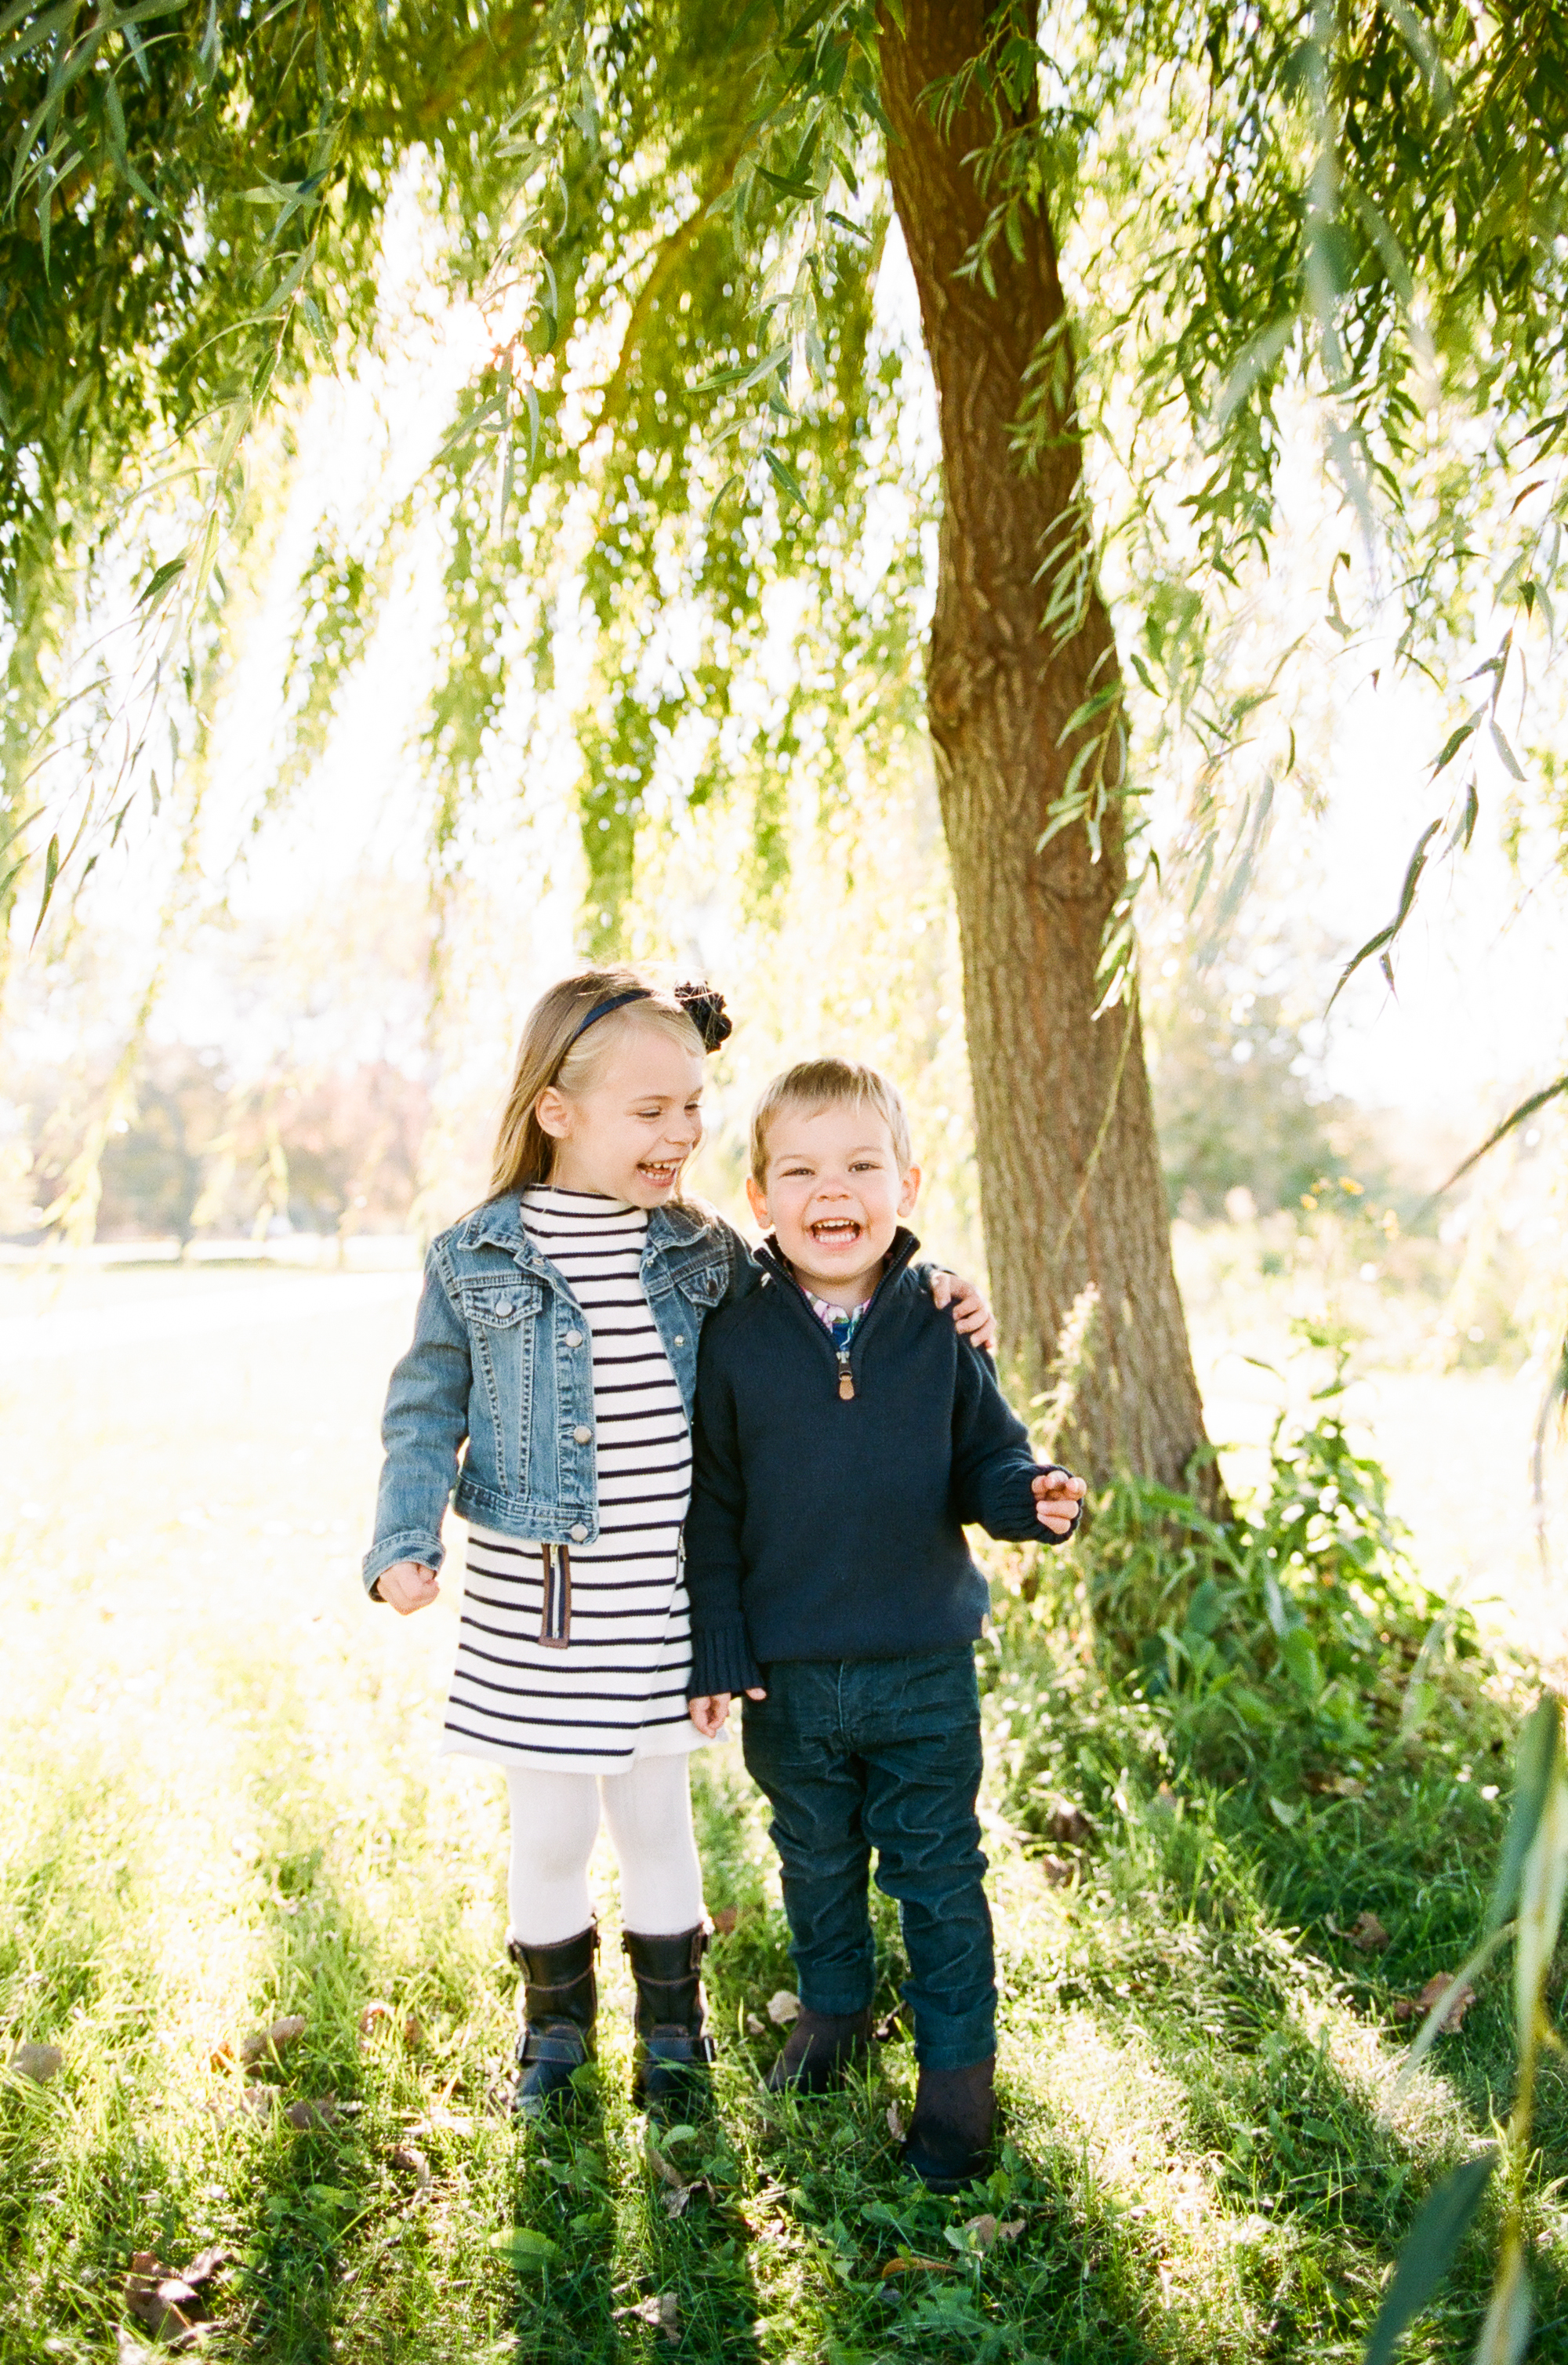 Siblings under a Willow Tree in Minneapolis, Minnesota photographed on 35mm film